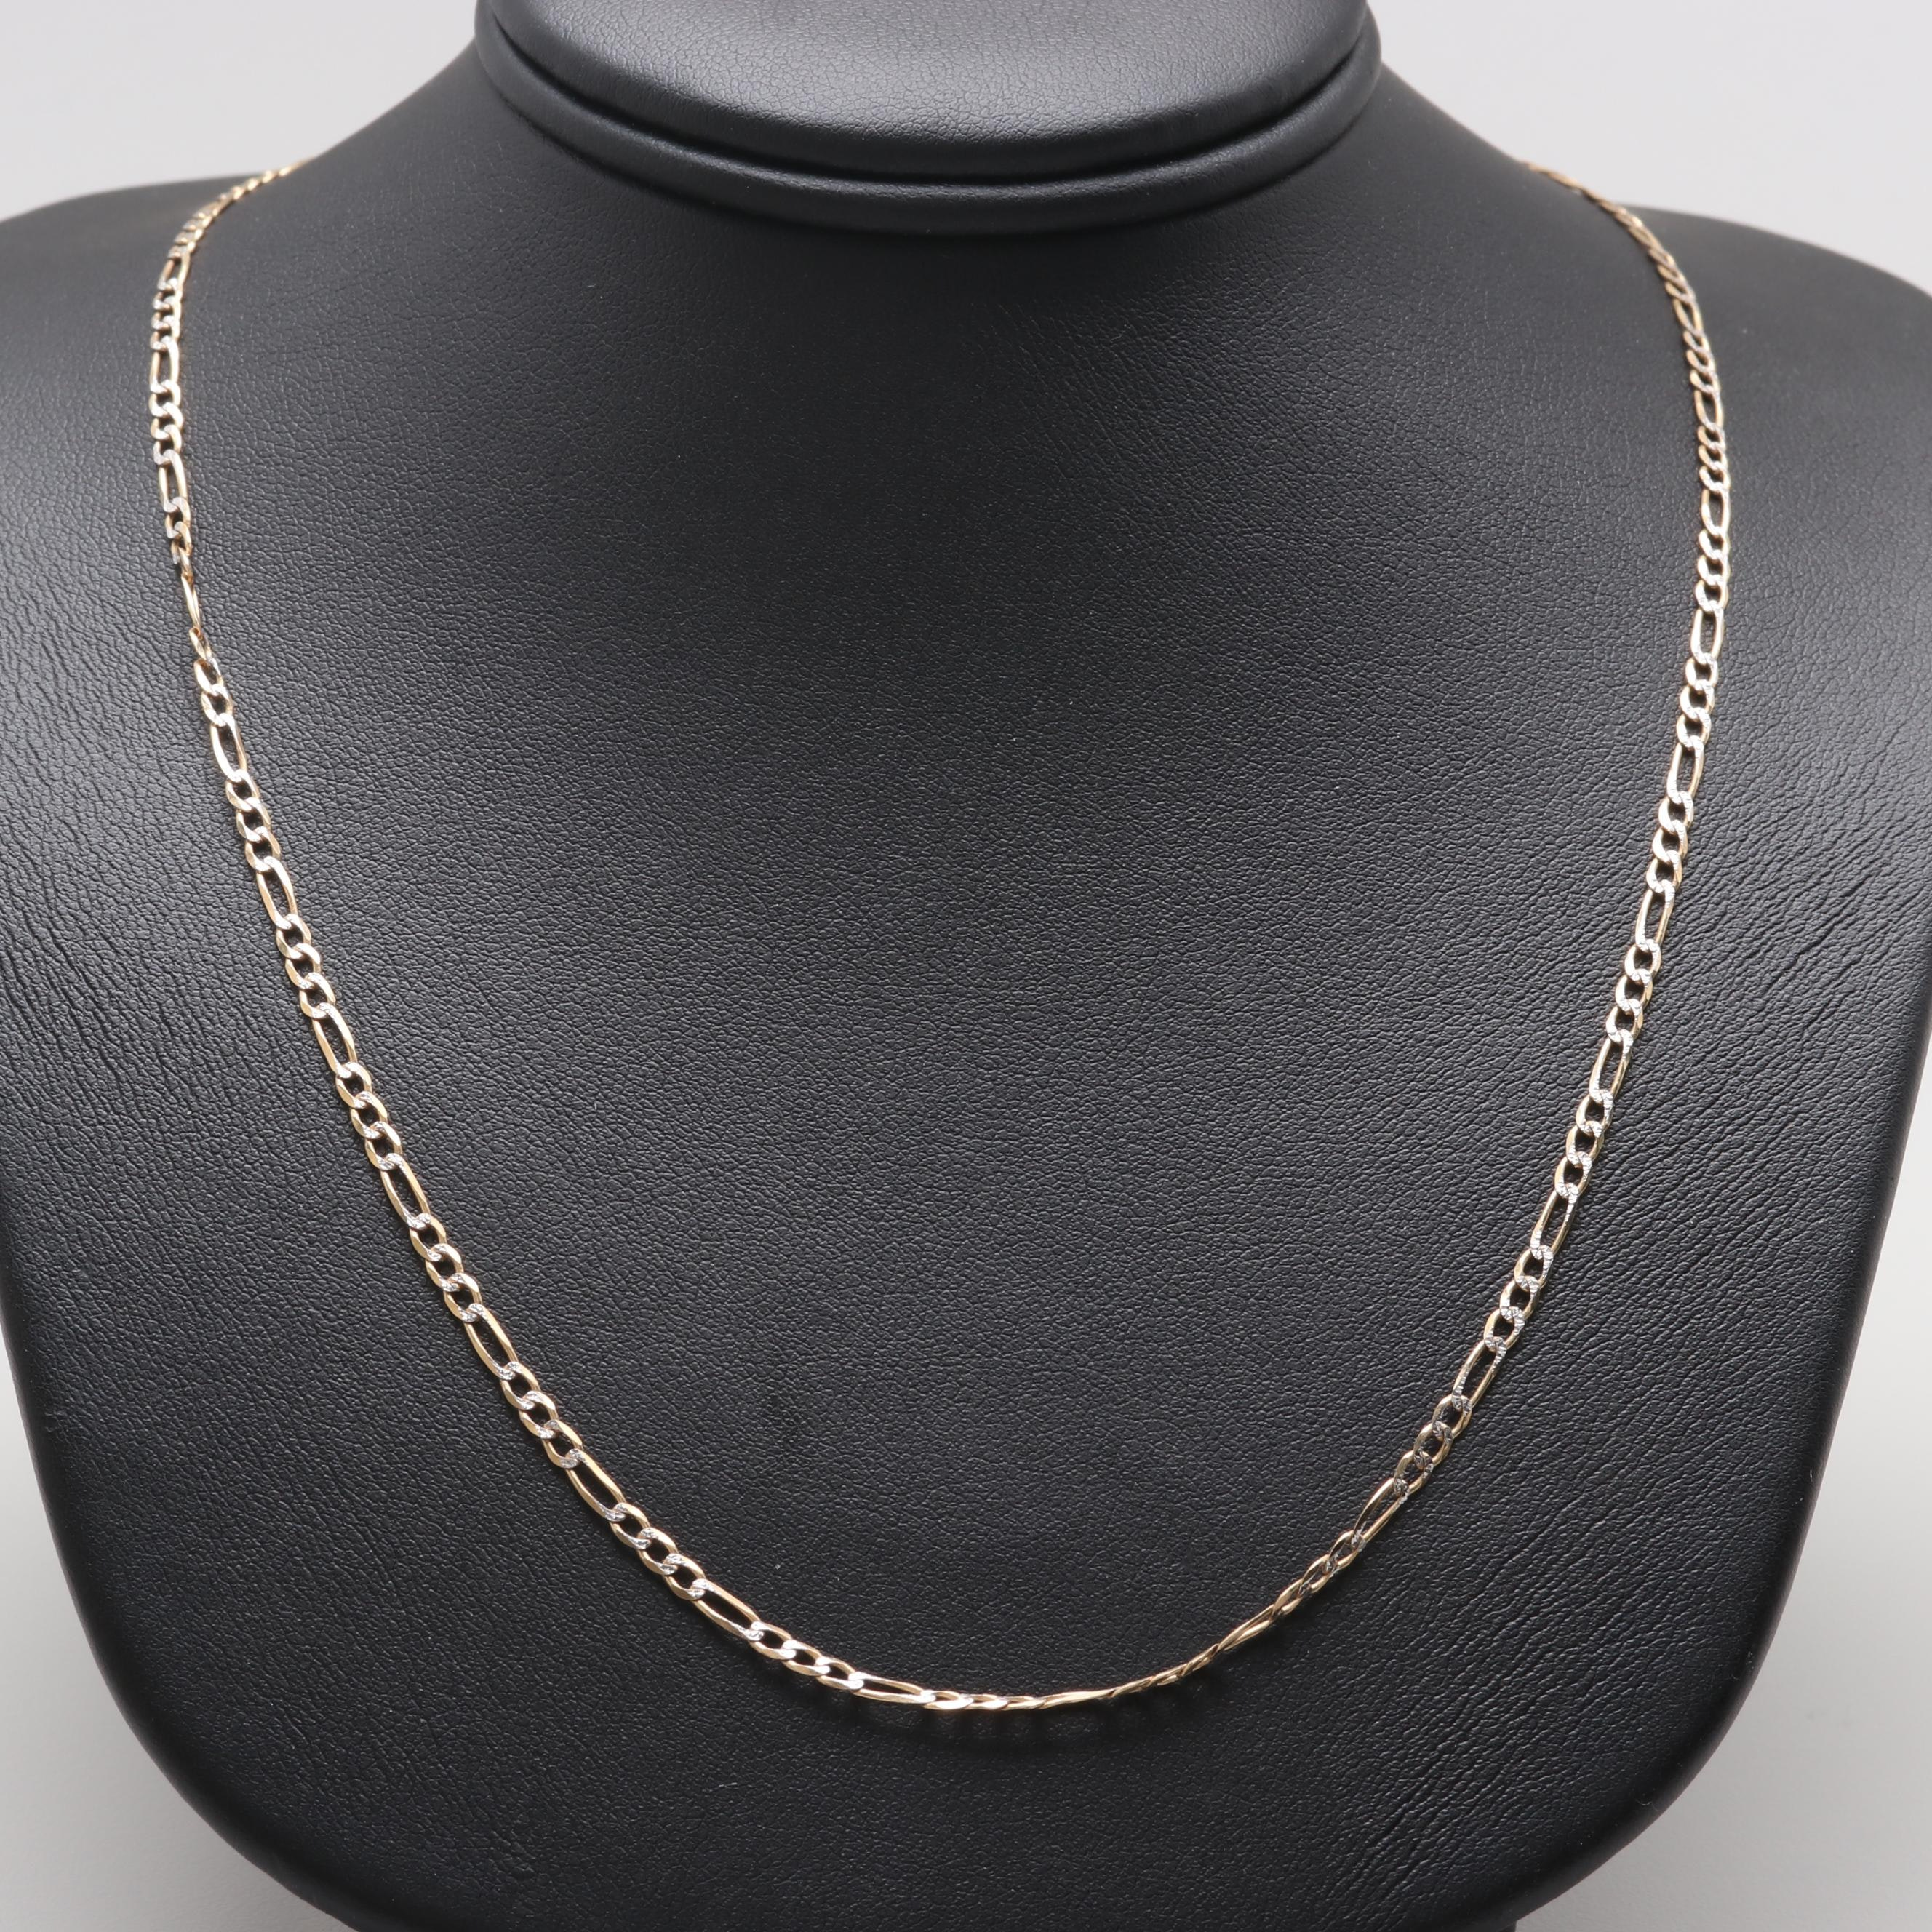 10K Yellow and White Gold Chain Necklace